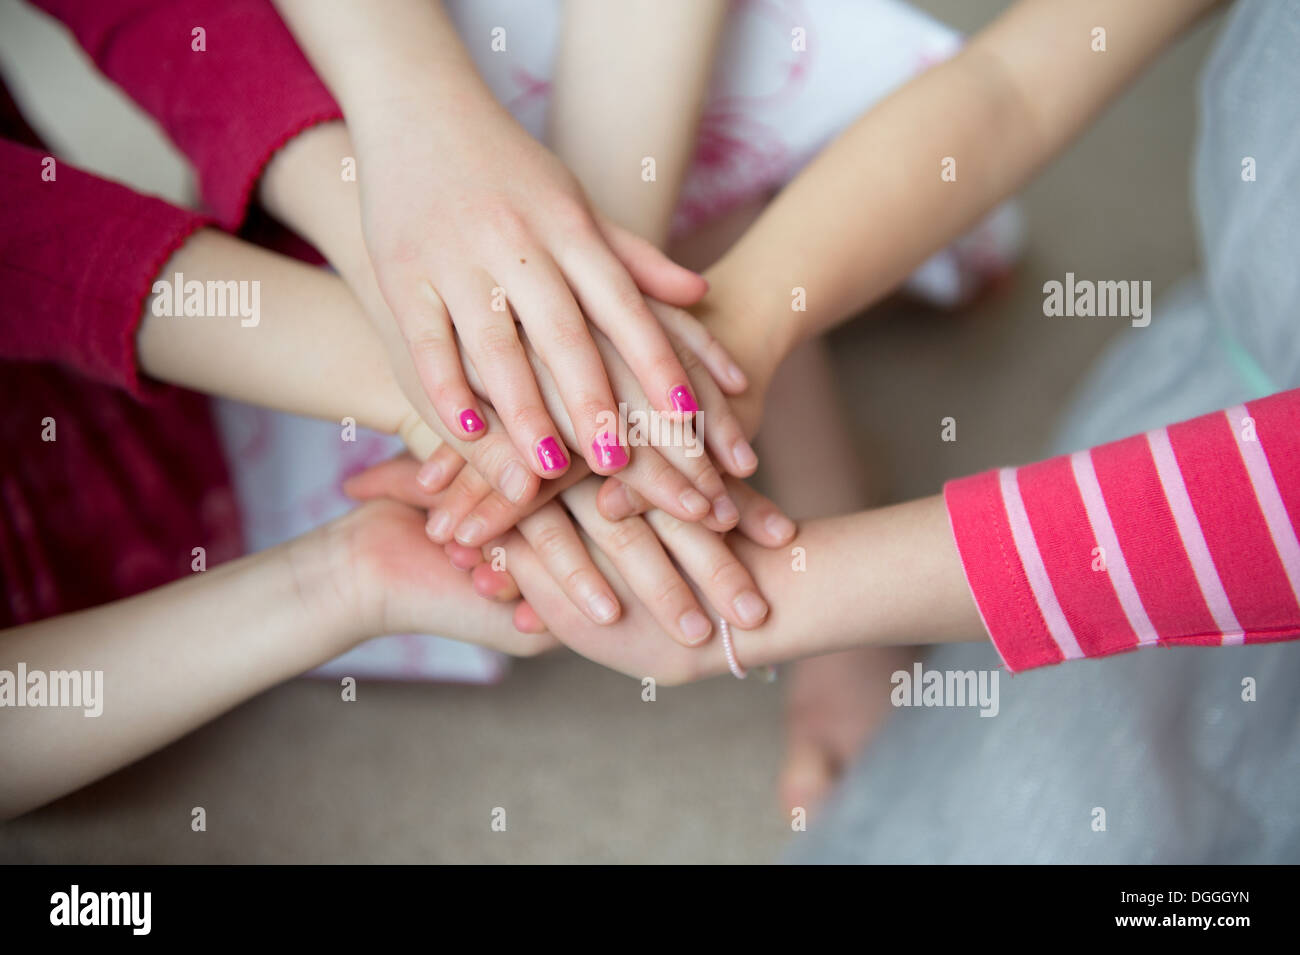 Girls putting hands together, close up Stock Photo: 61830153 - Alamy